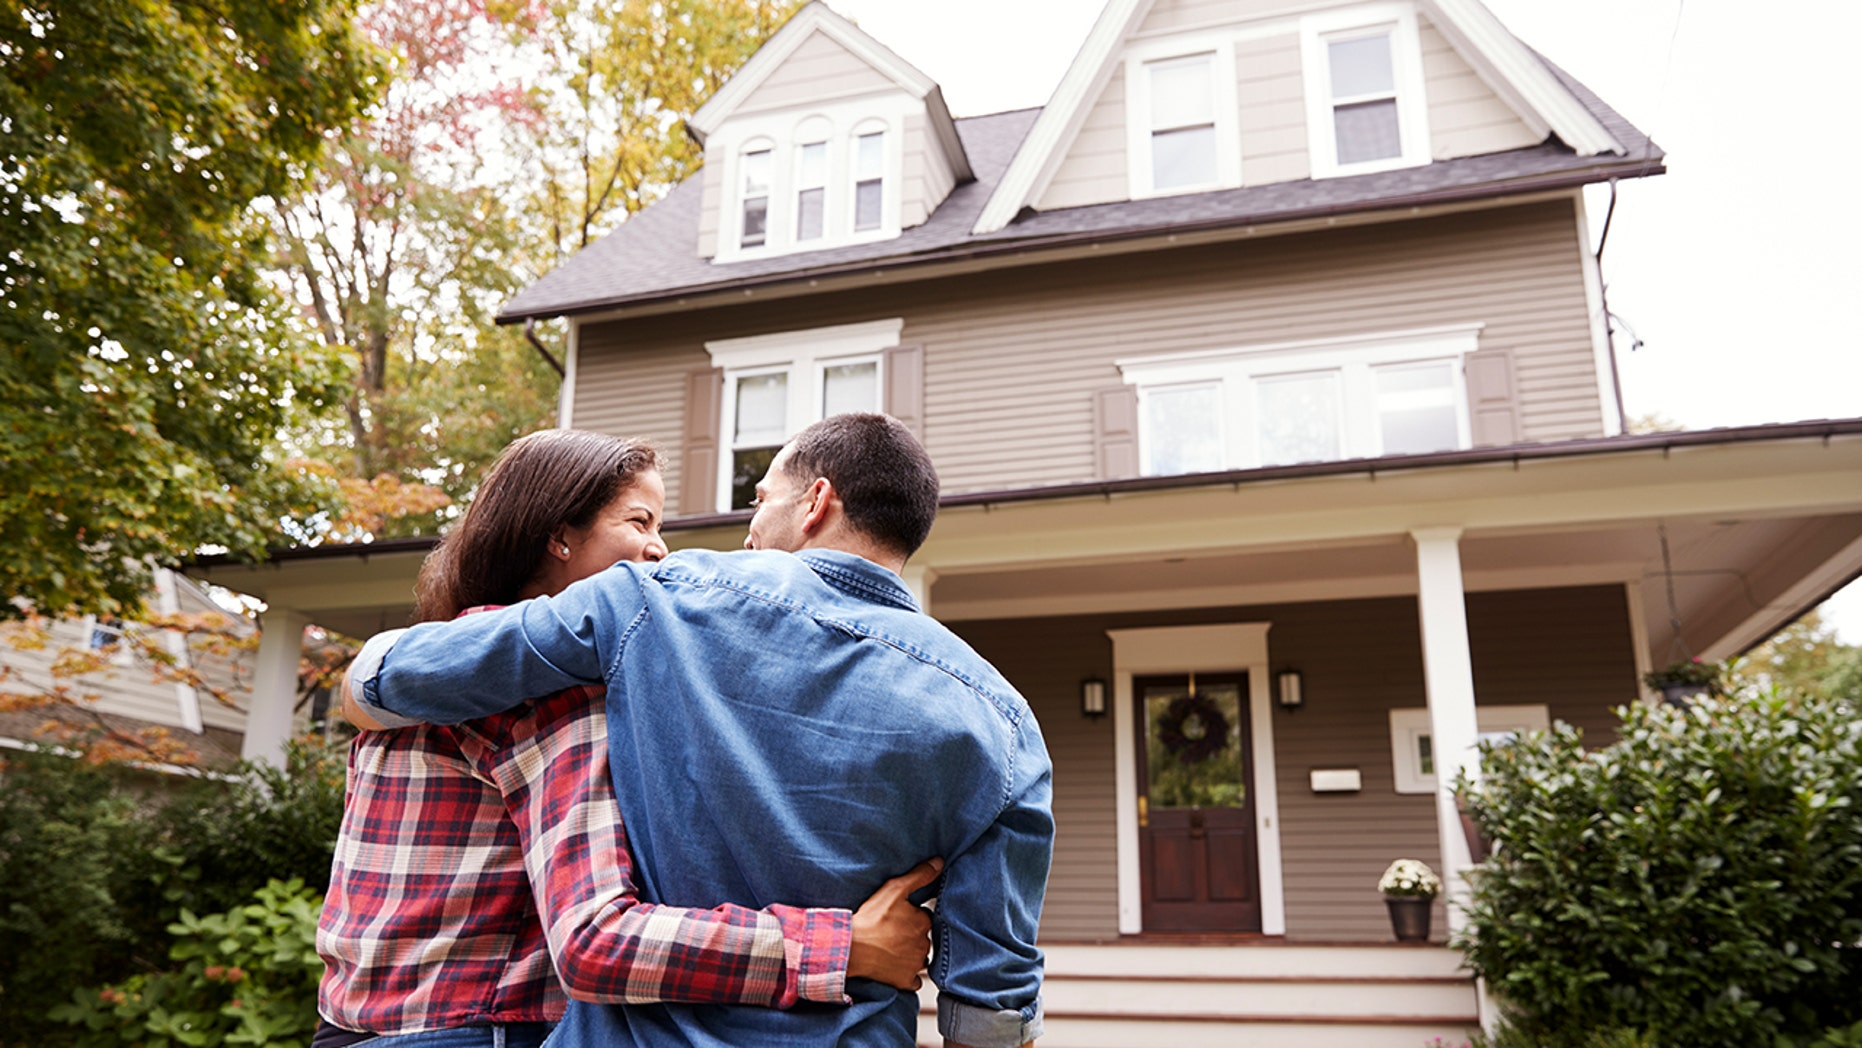 Thinking of renting your home on Airbnb? There are few things you need to know, first.